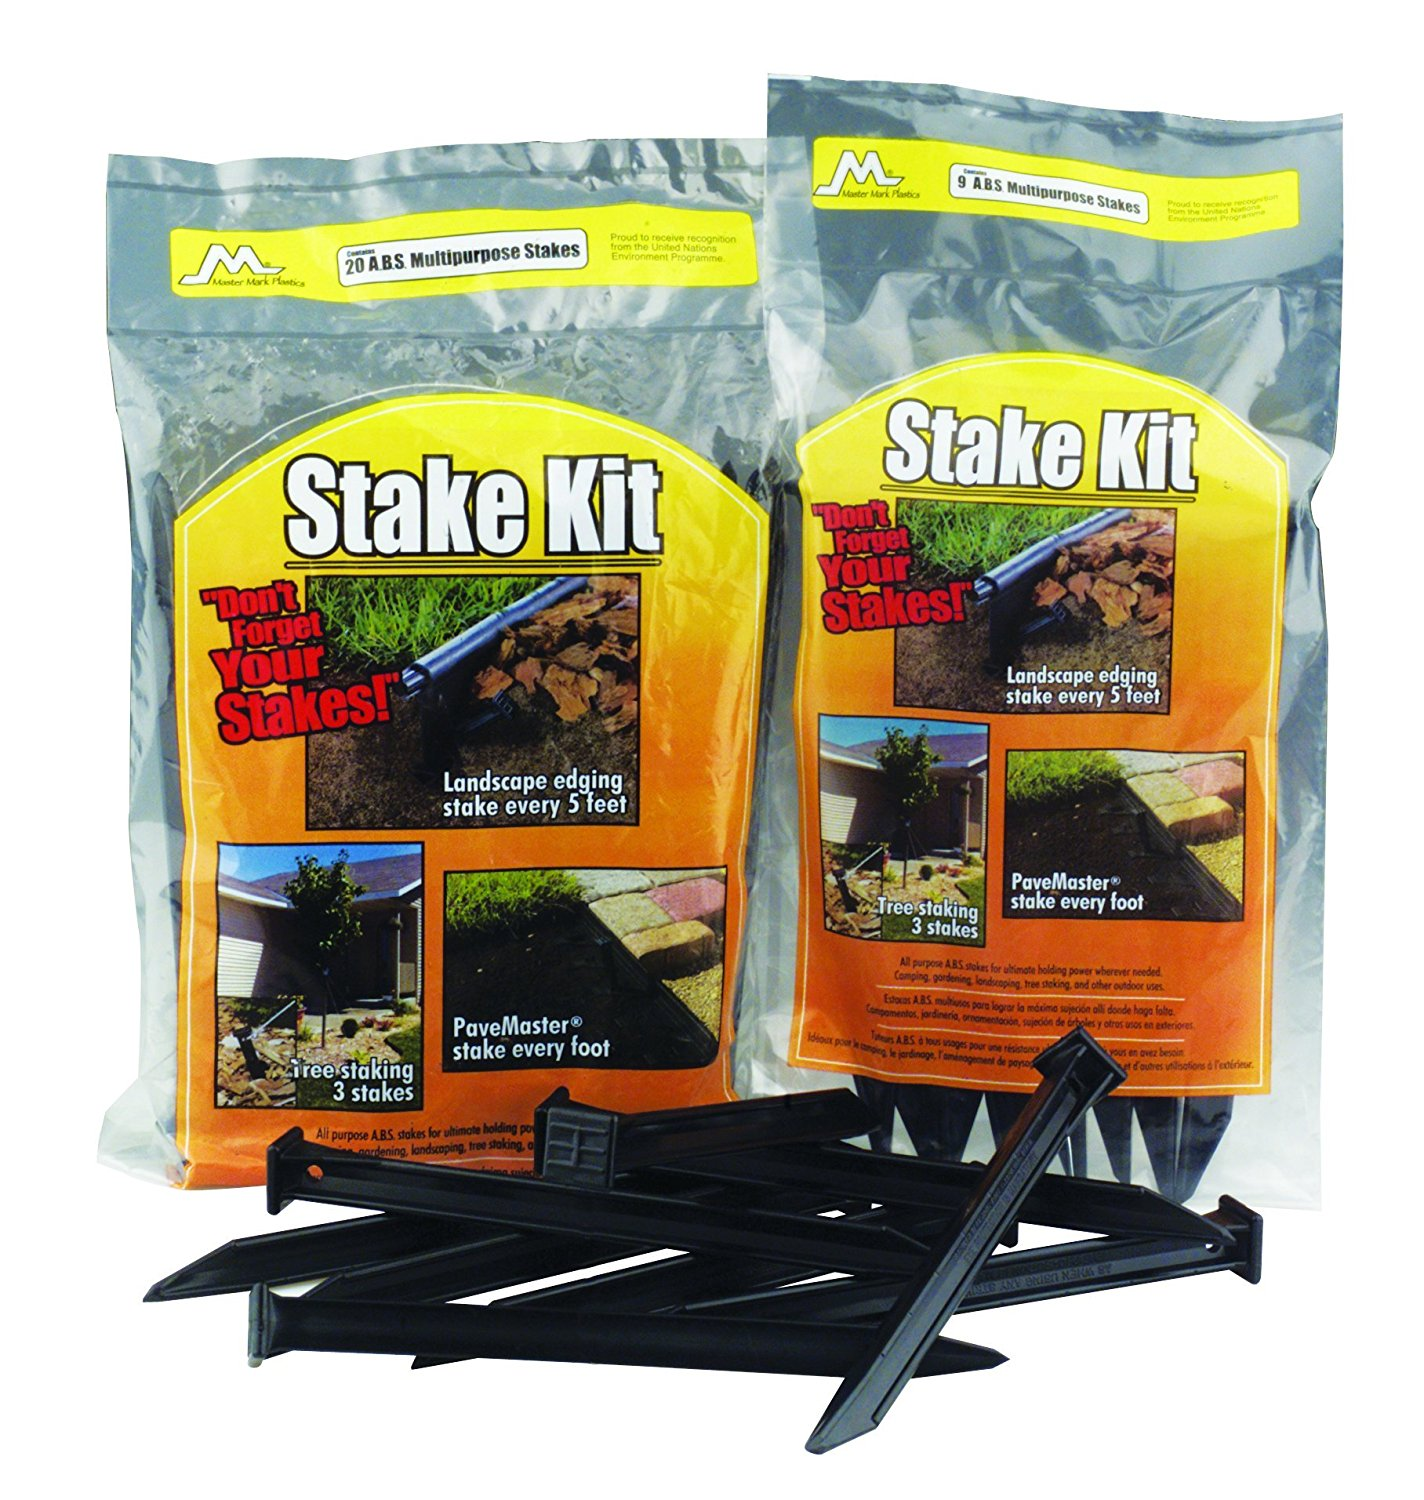 12120 ABS Plastic Stake Anchors For Landscape Edging 10 Inch, 20 Pack, Can be used for all type of landscape and pavemaster edging By Master Mark Plastics